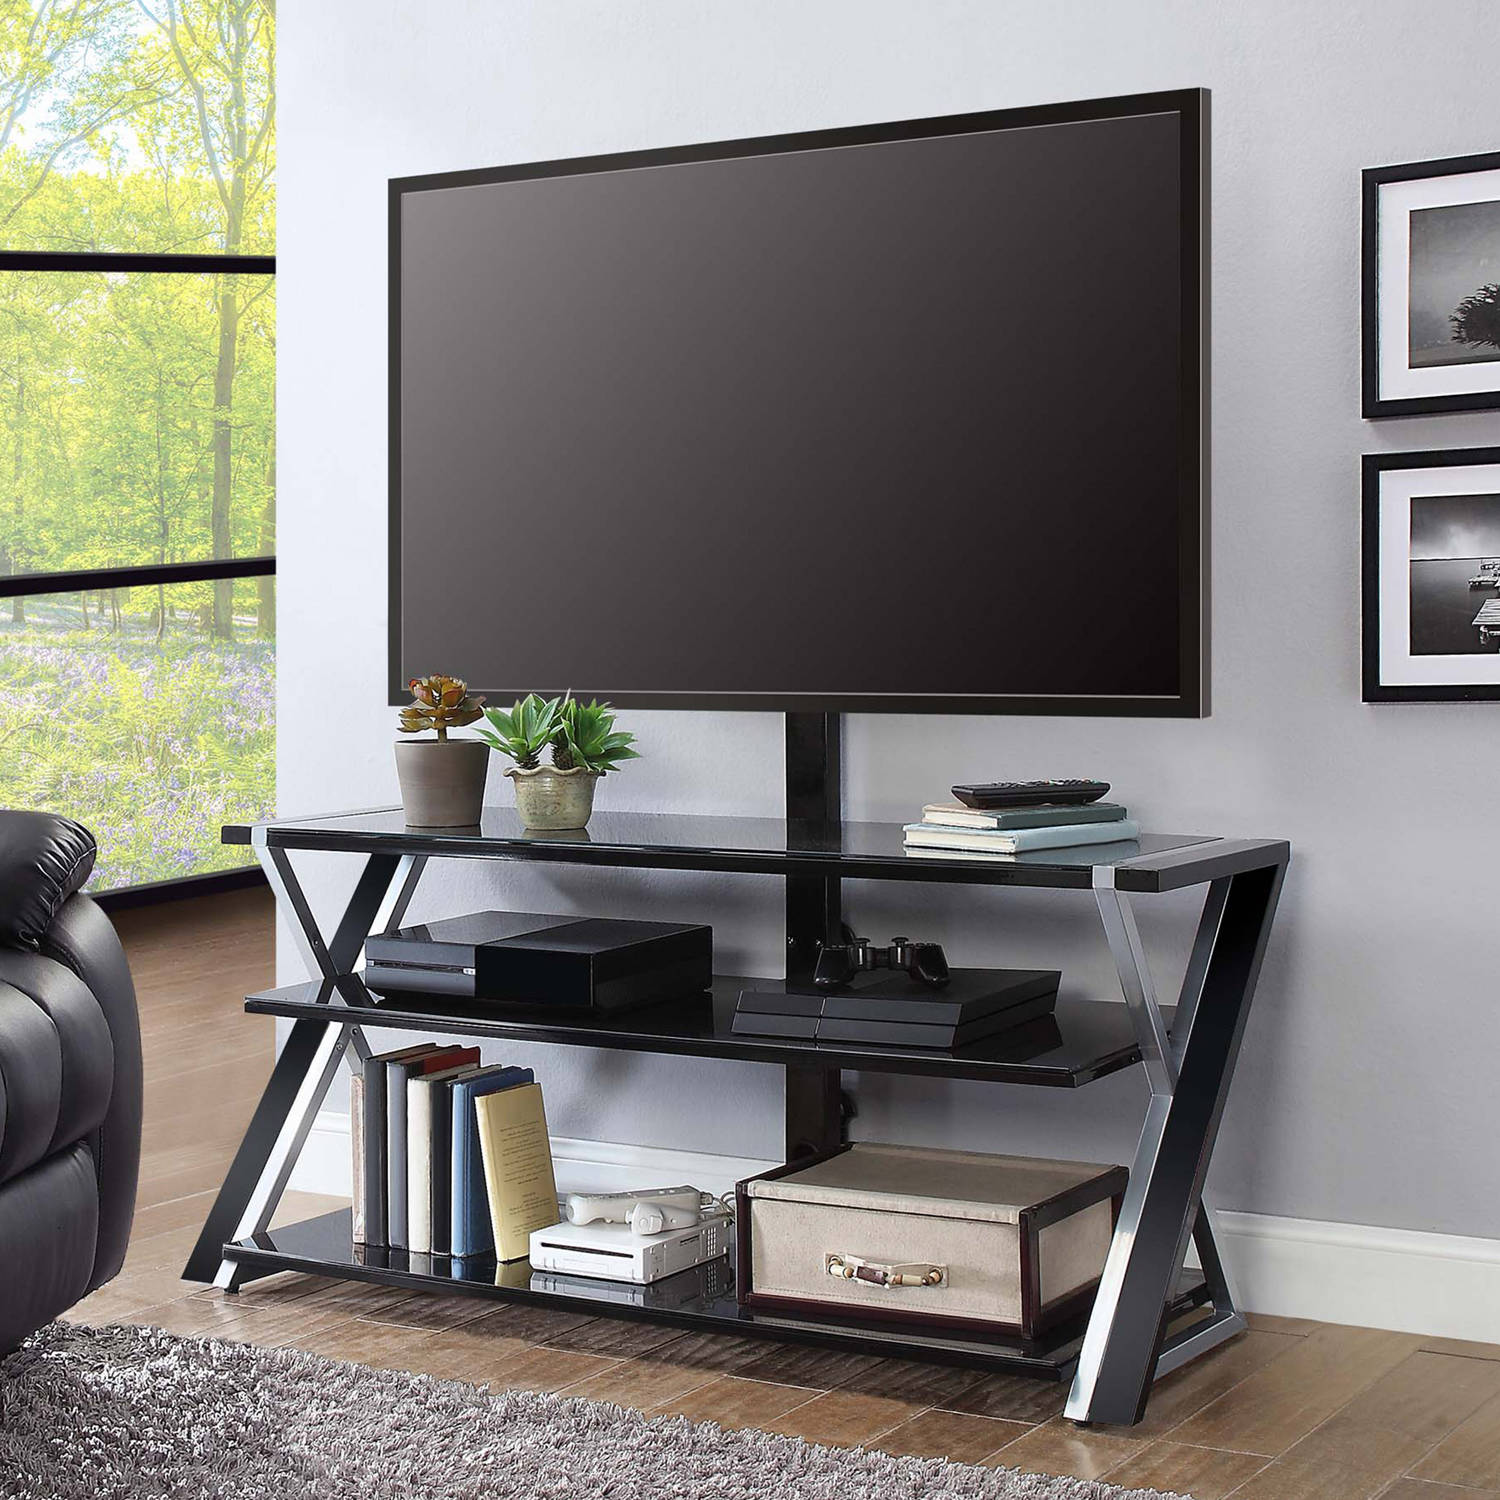 Whalen Xavier 3 In 1 Flat Panel Tv Stand For Tvs Up To 70  # Meuble Tv Design Angle